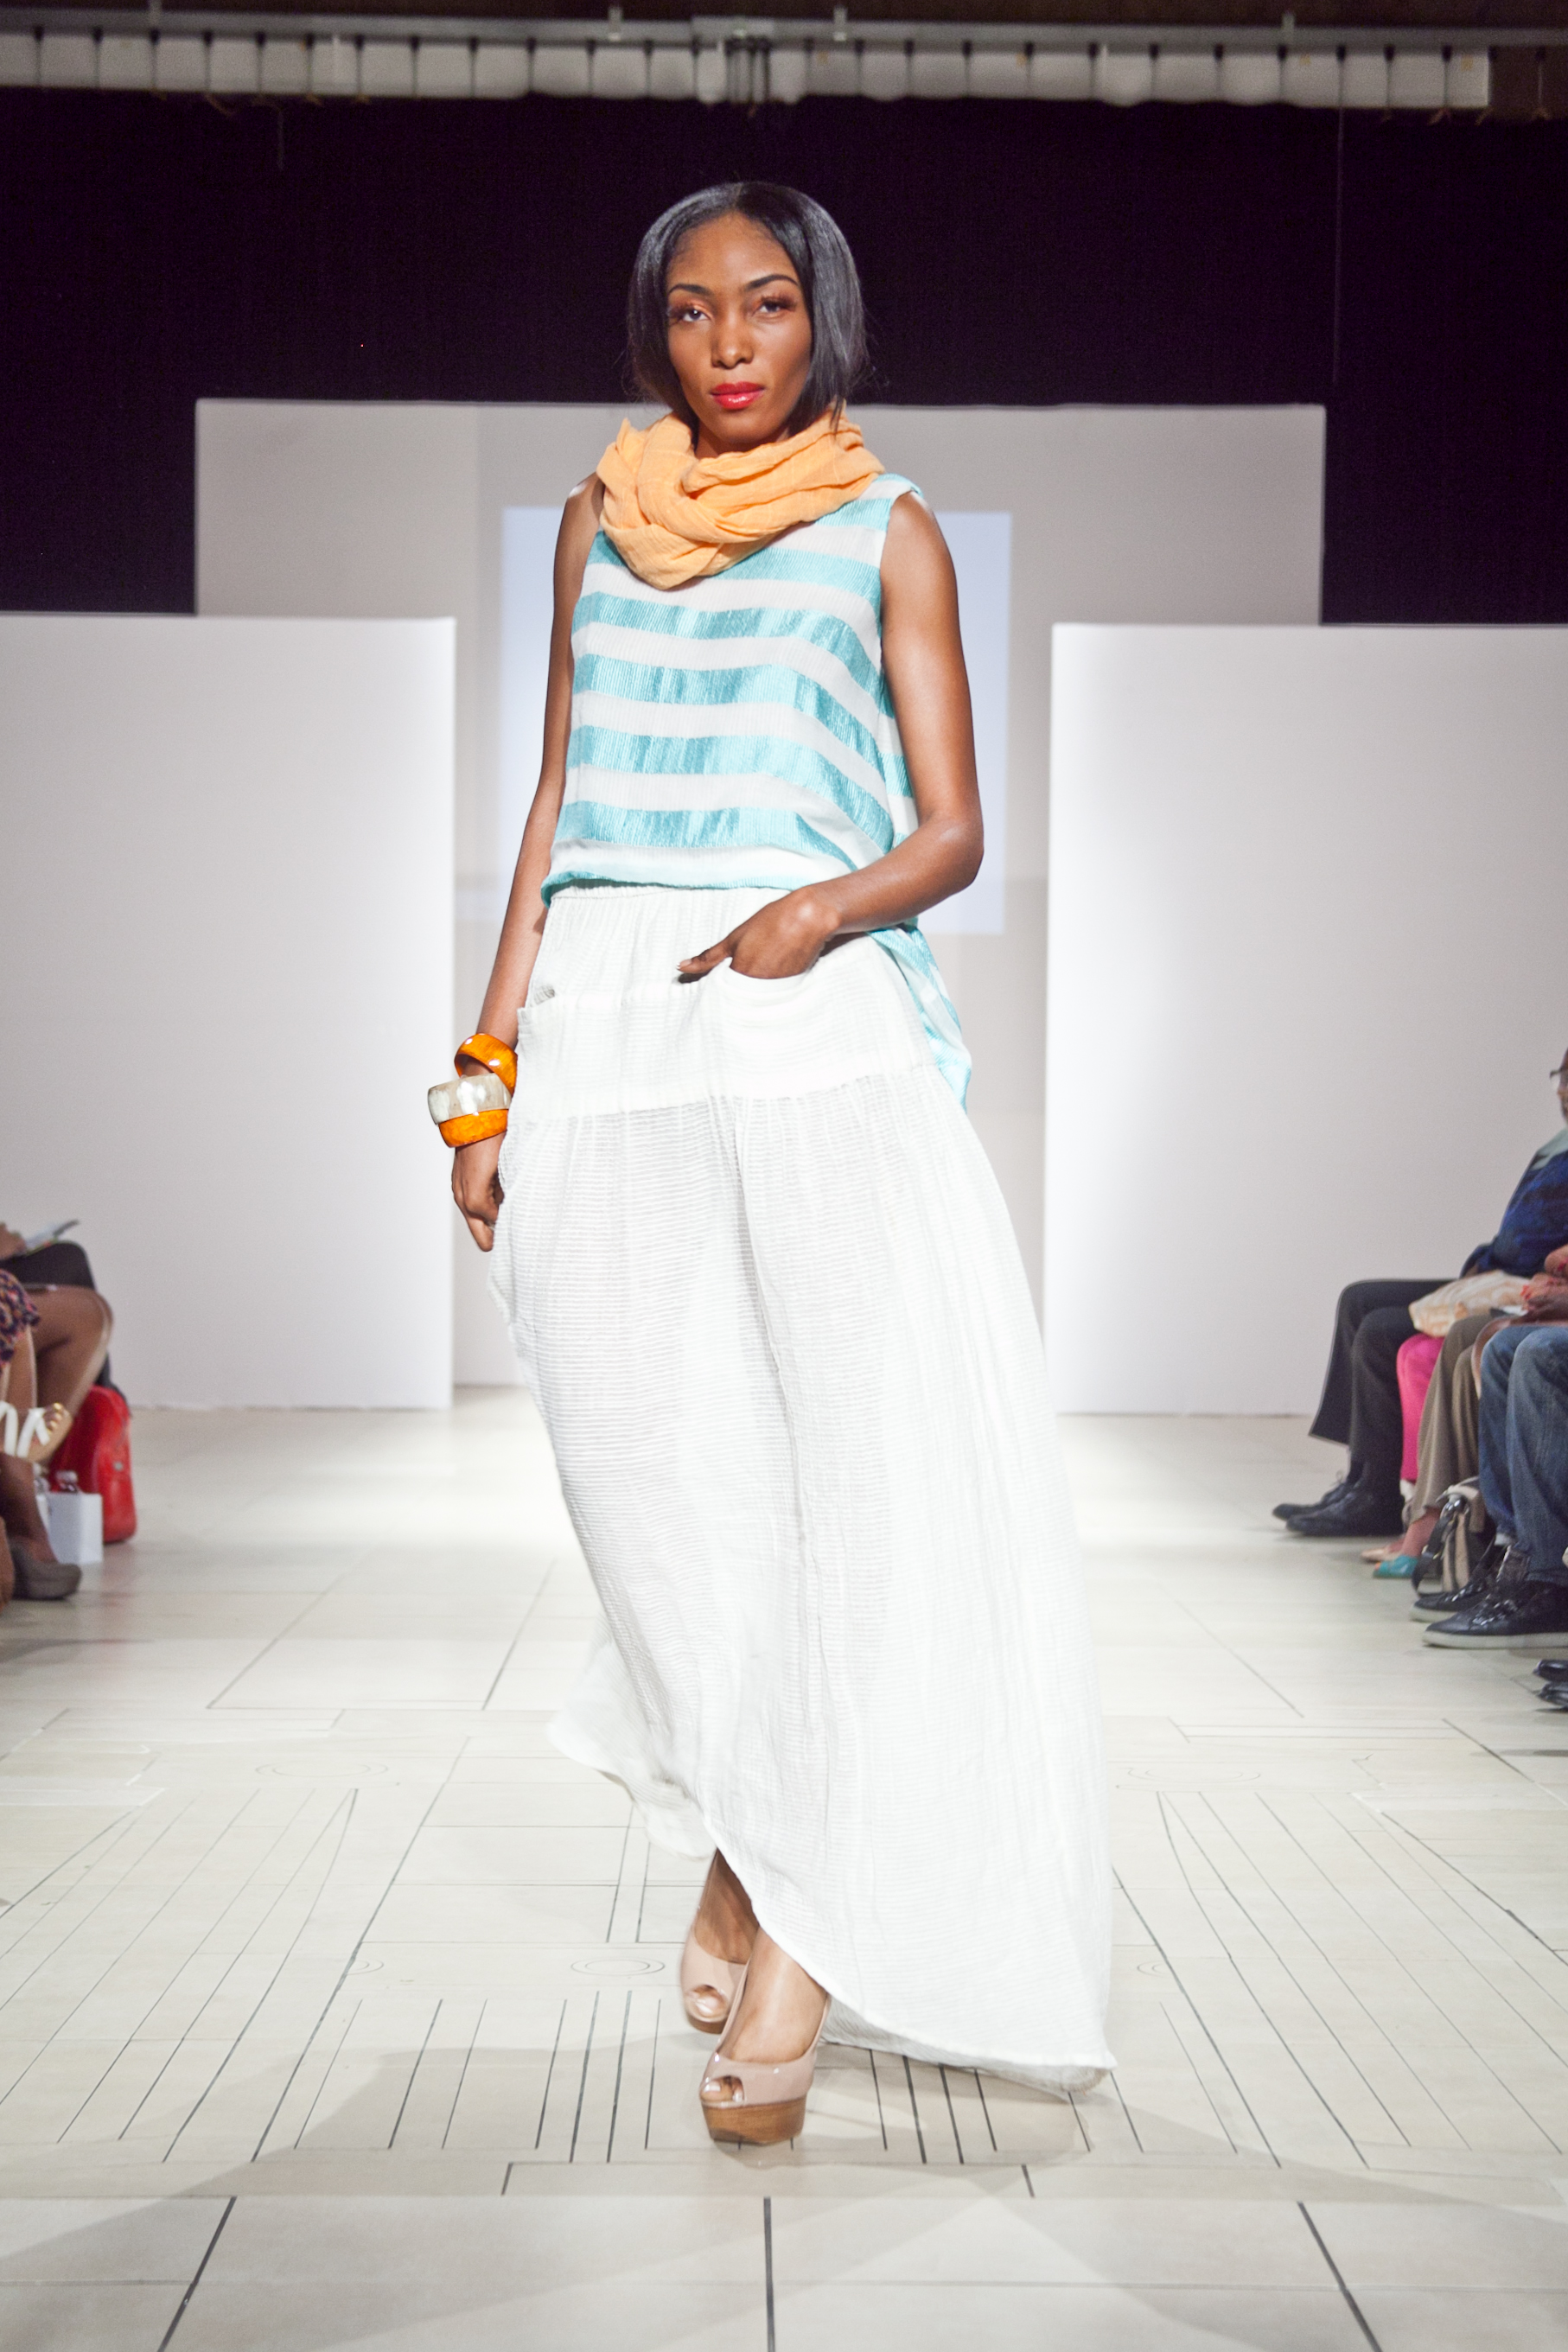 Fashion Industry Networking Events